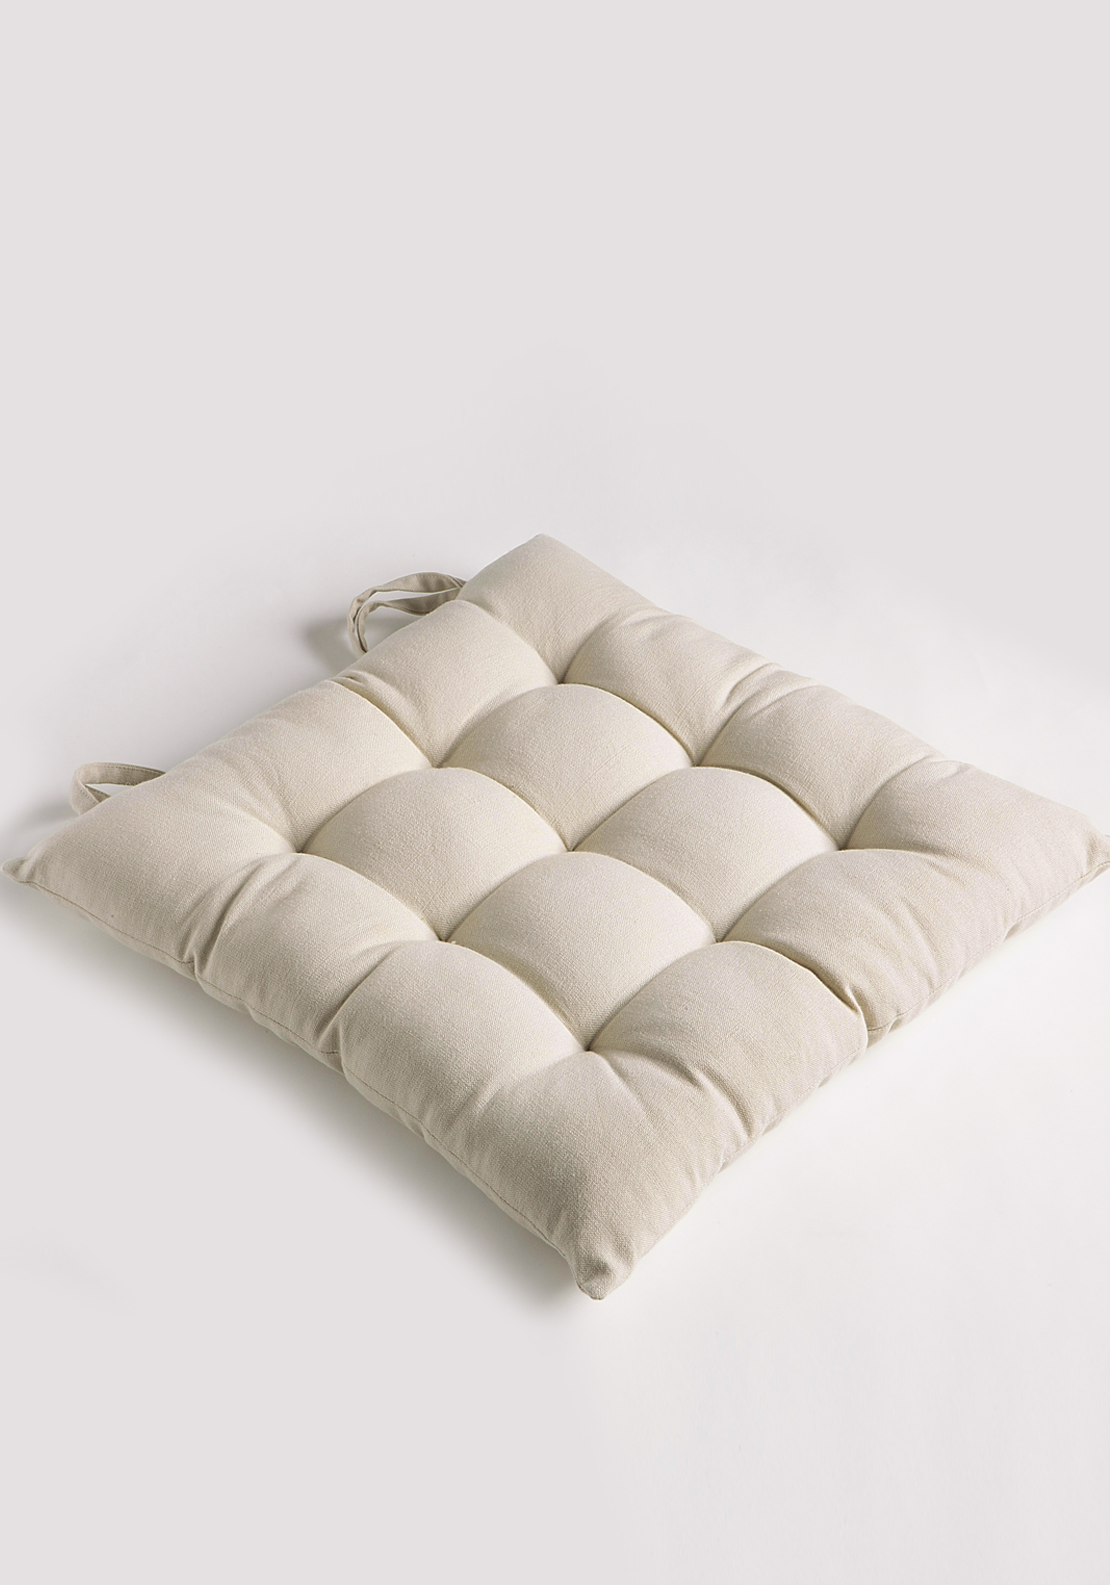 Scatterbox Pintuck Seat Pad, 40 x 40cm Natural